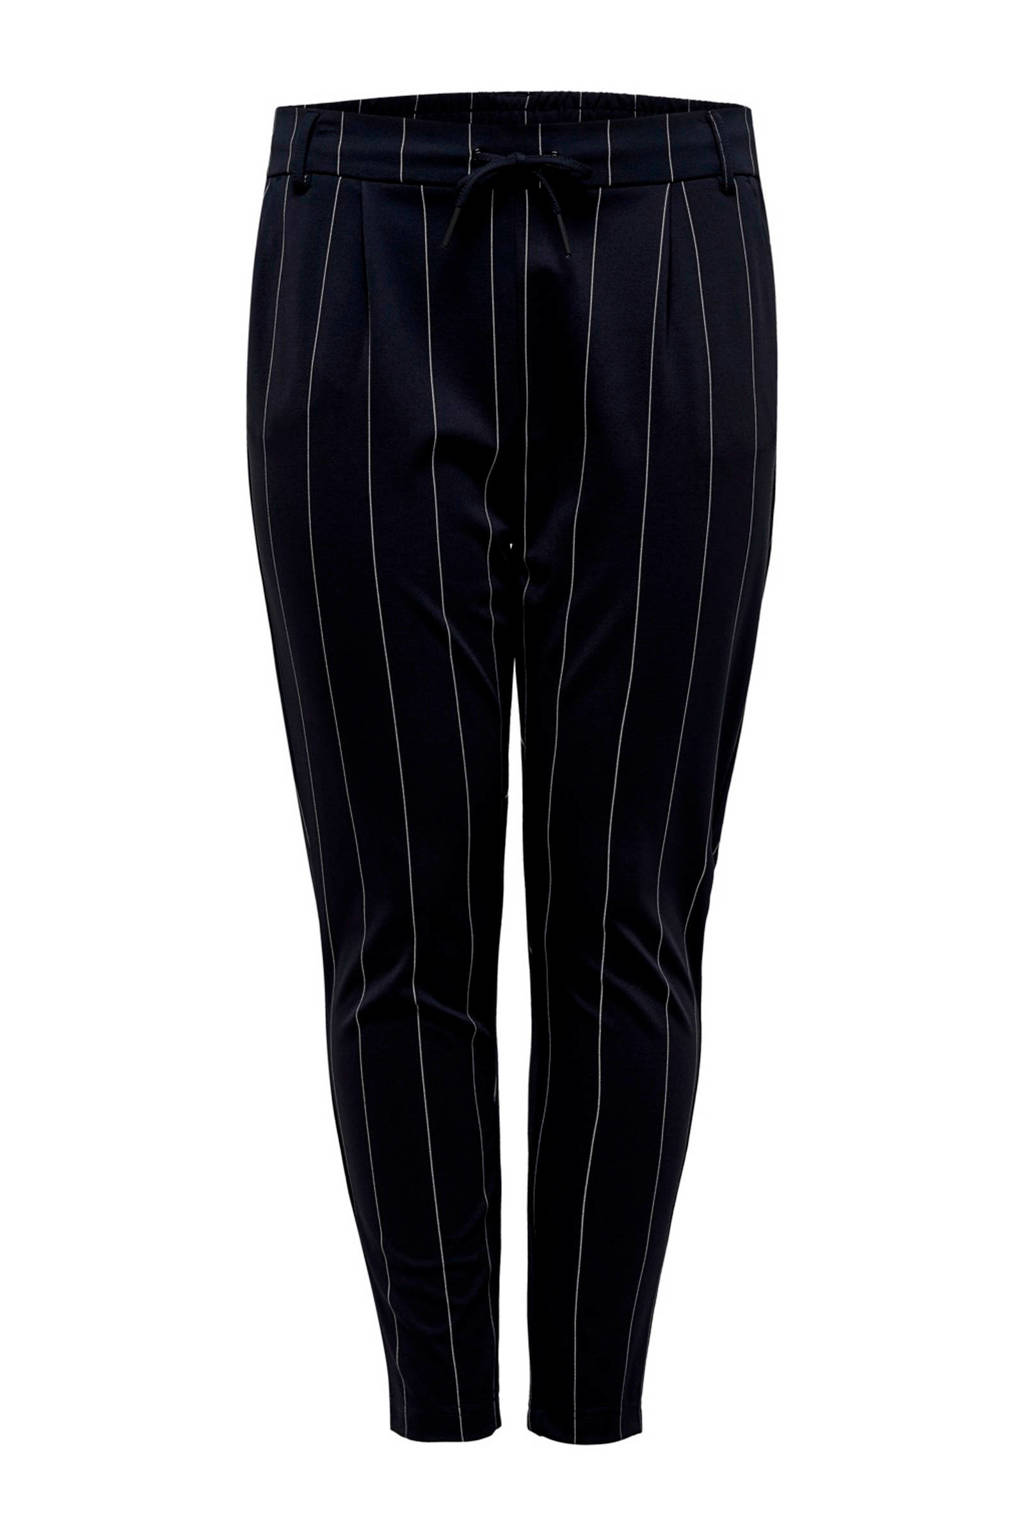 ONLY carmakoma gestreepte tapered fit broek donkerblauw/wit, Donkerblauw/wit